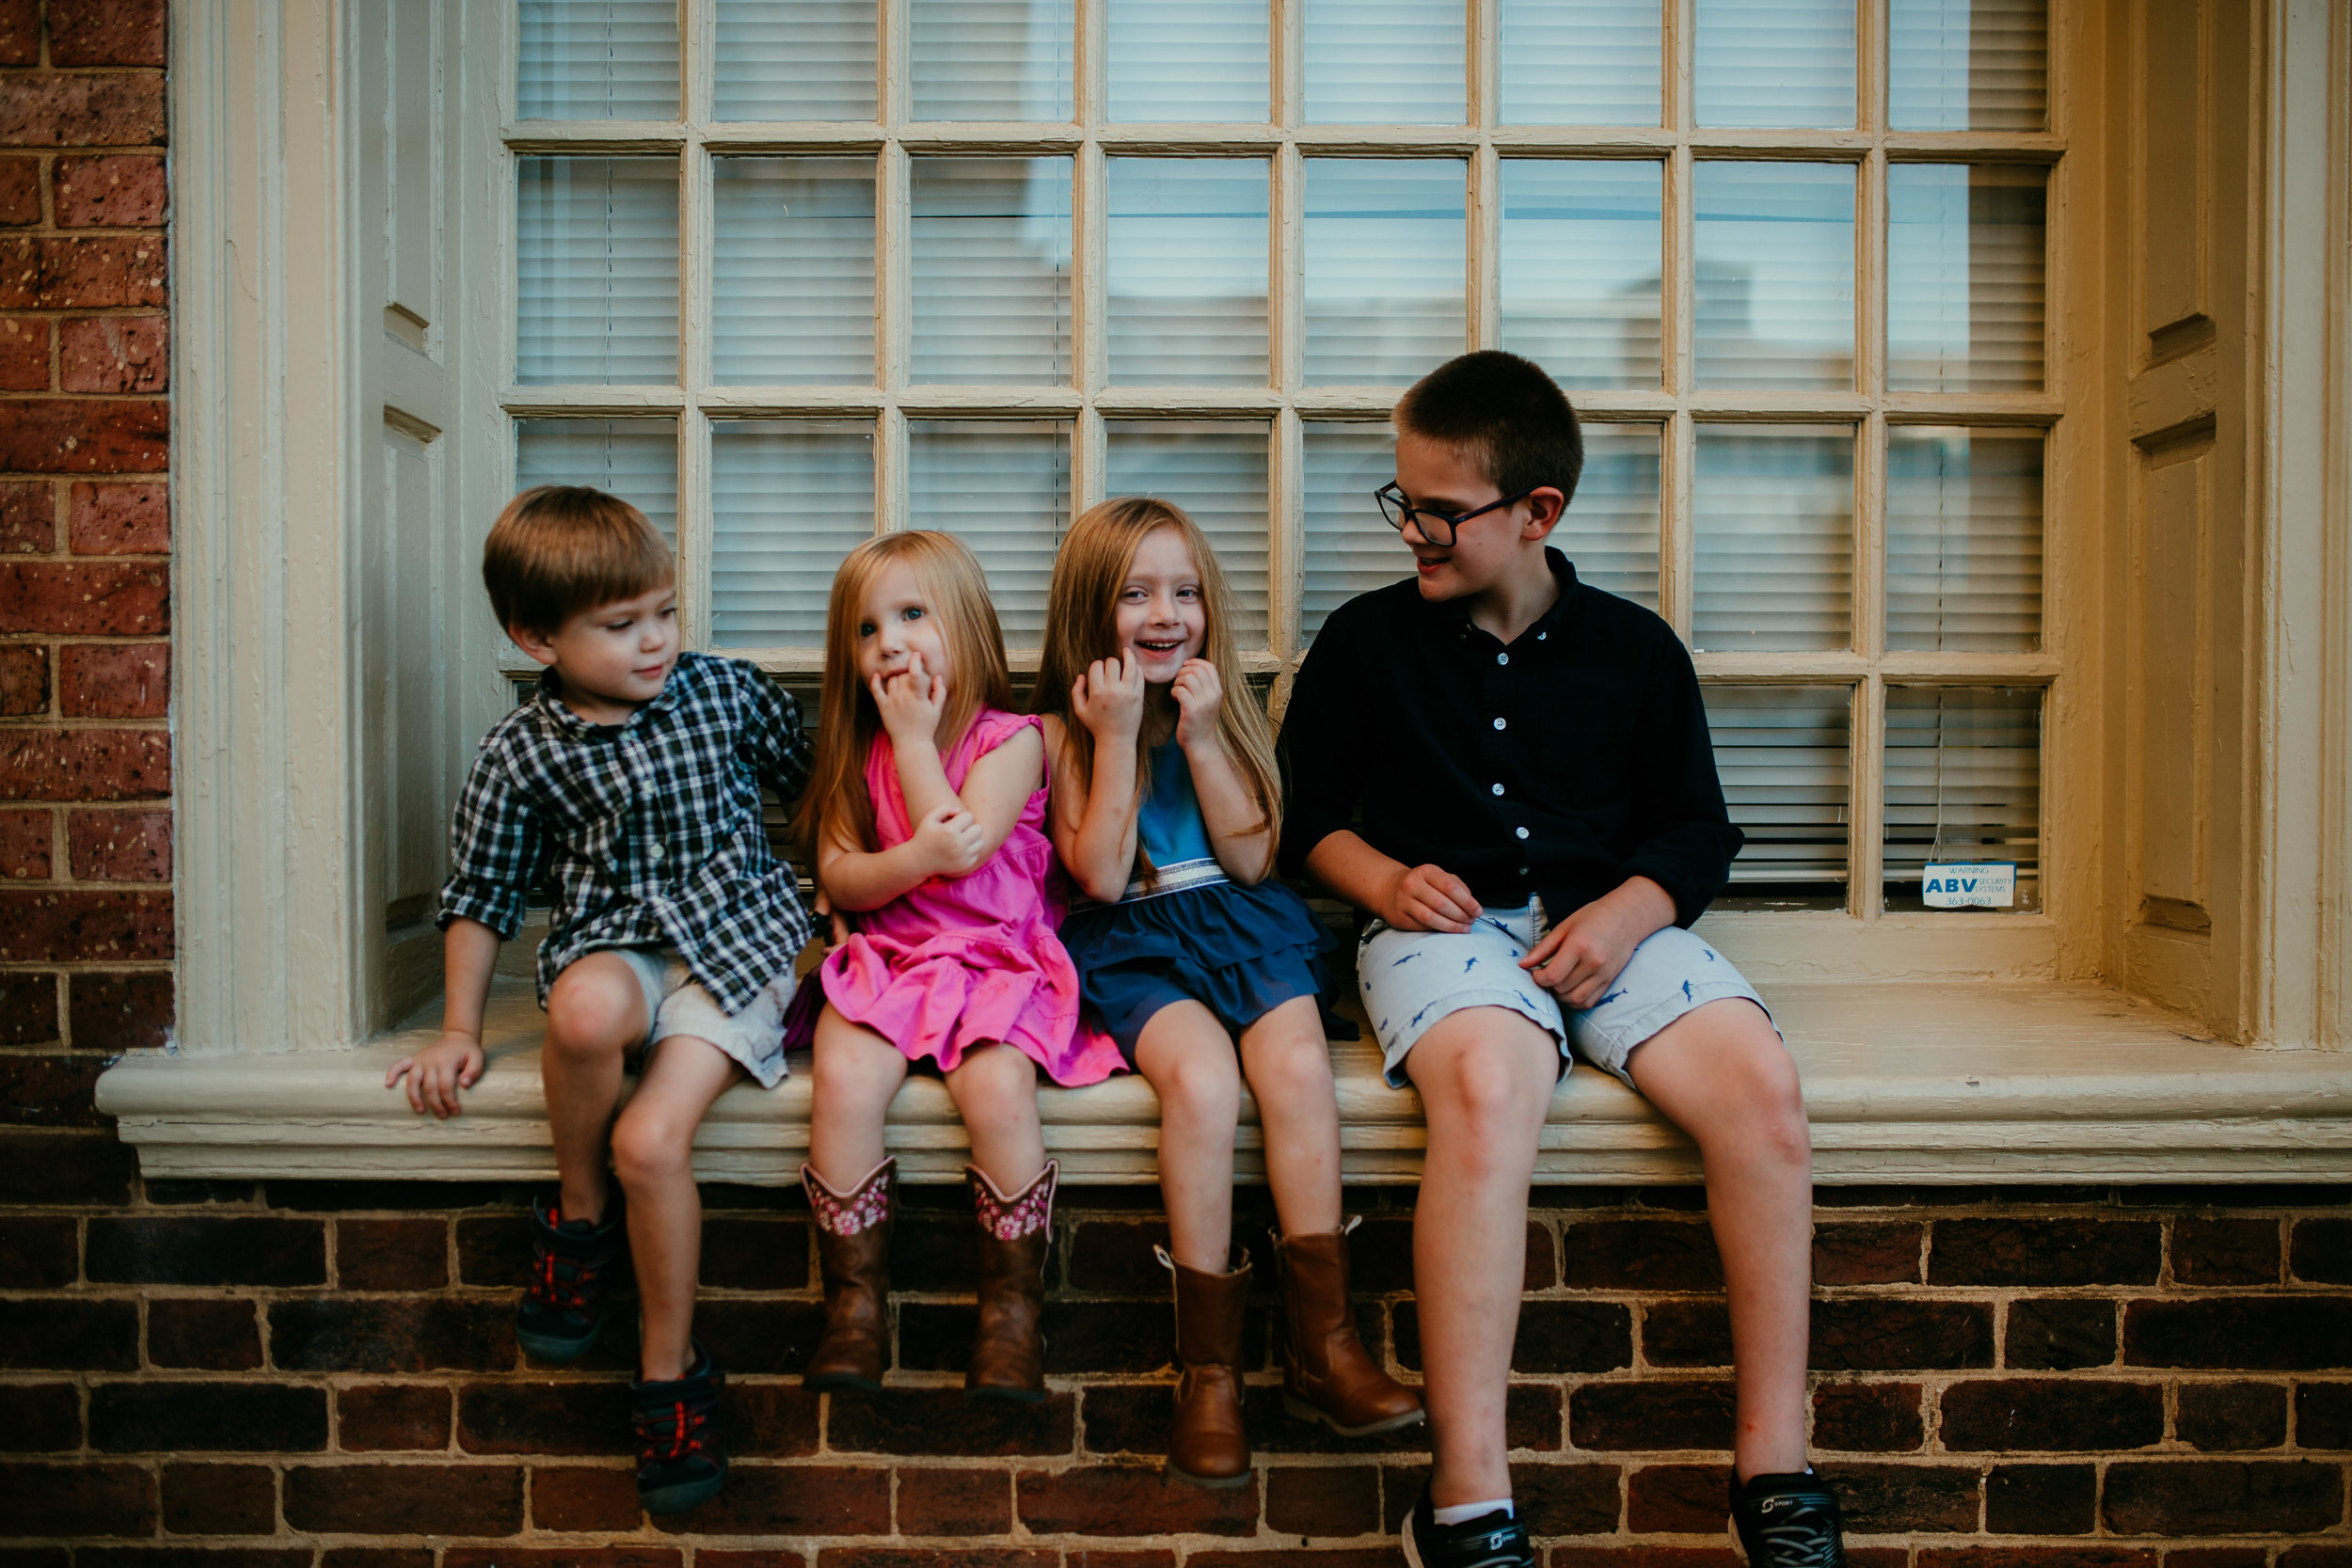 the siblings sitting on a window sill during their downtown durham, NC family photography session | Hanna Hill Photography | Raleigh birth and family photographer